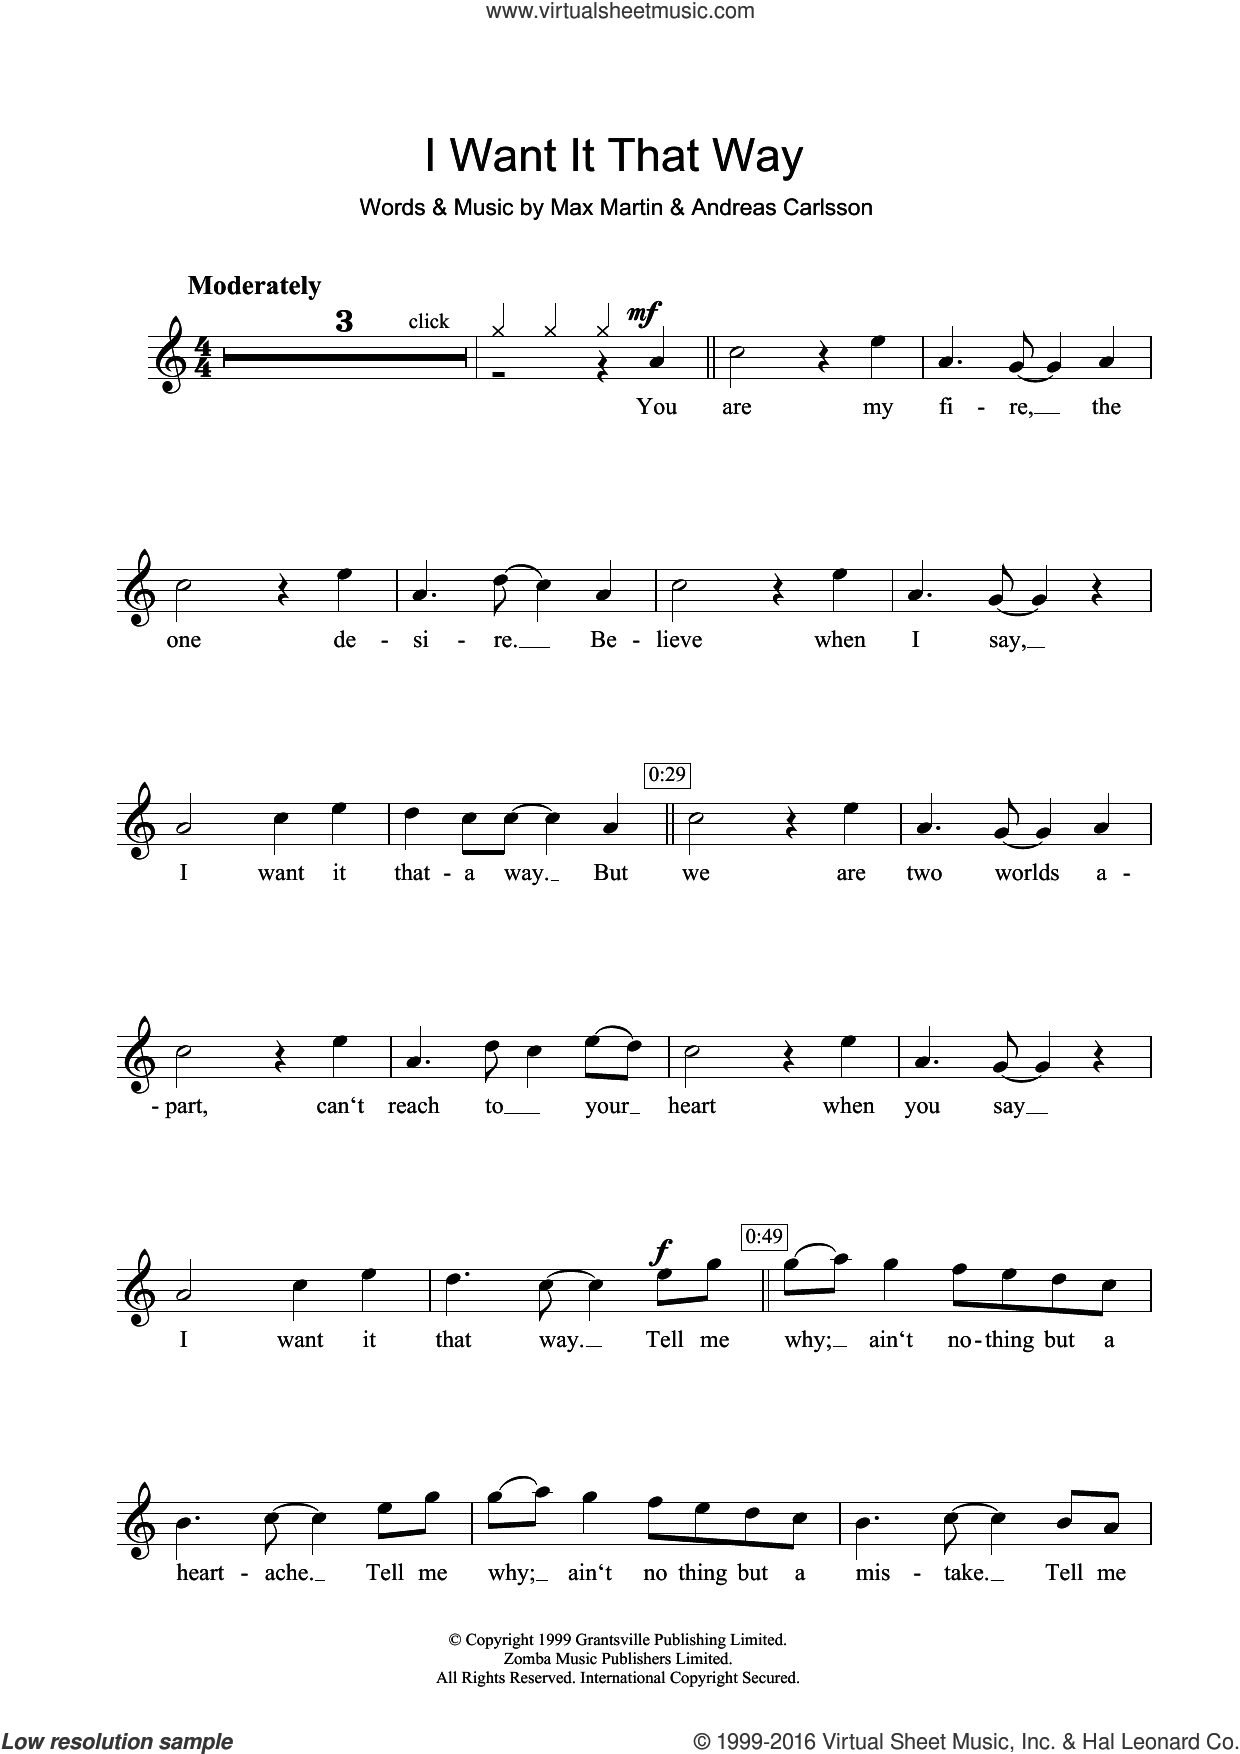 I Want It That Way sheet music for clarinet solo by Backstreet Boys, Andreas Carlsson and Max Martin, intermediate skill level